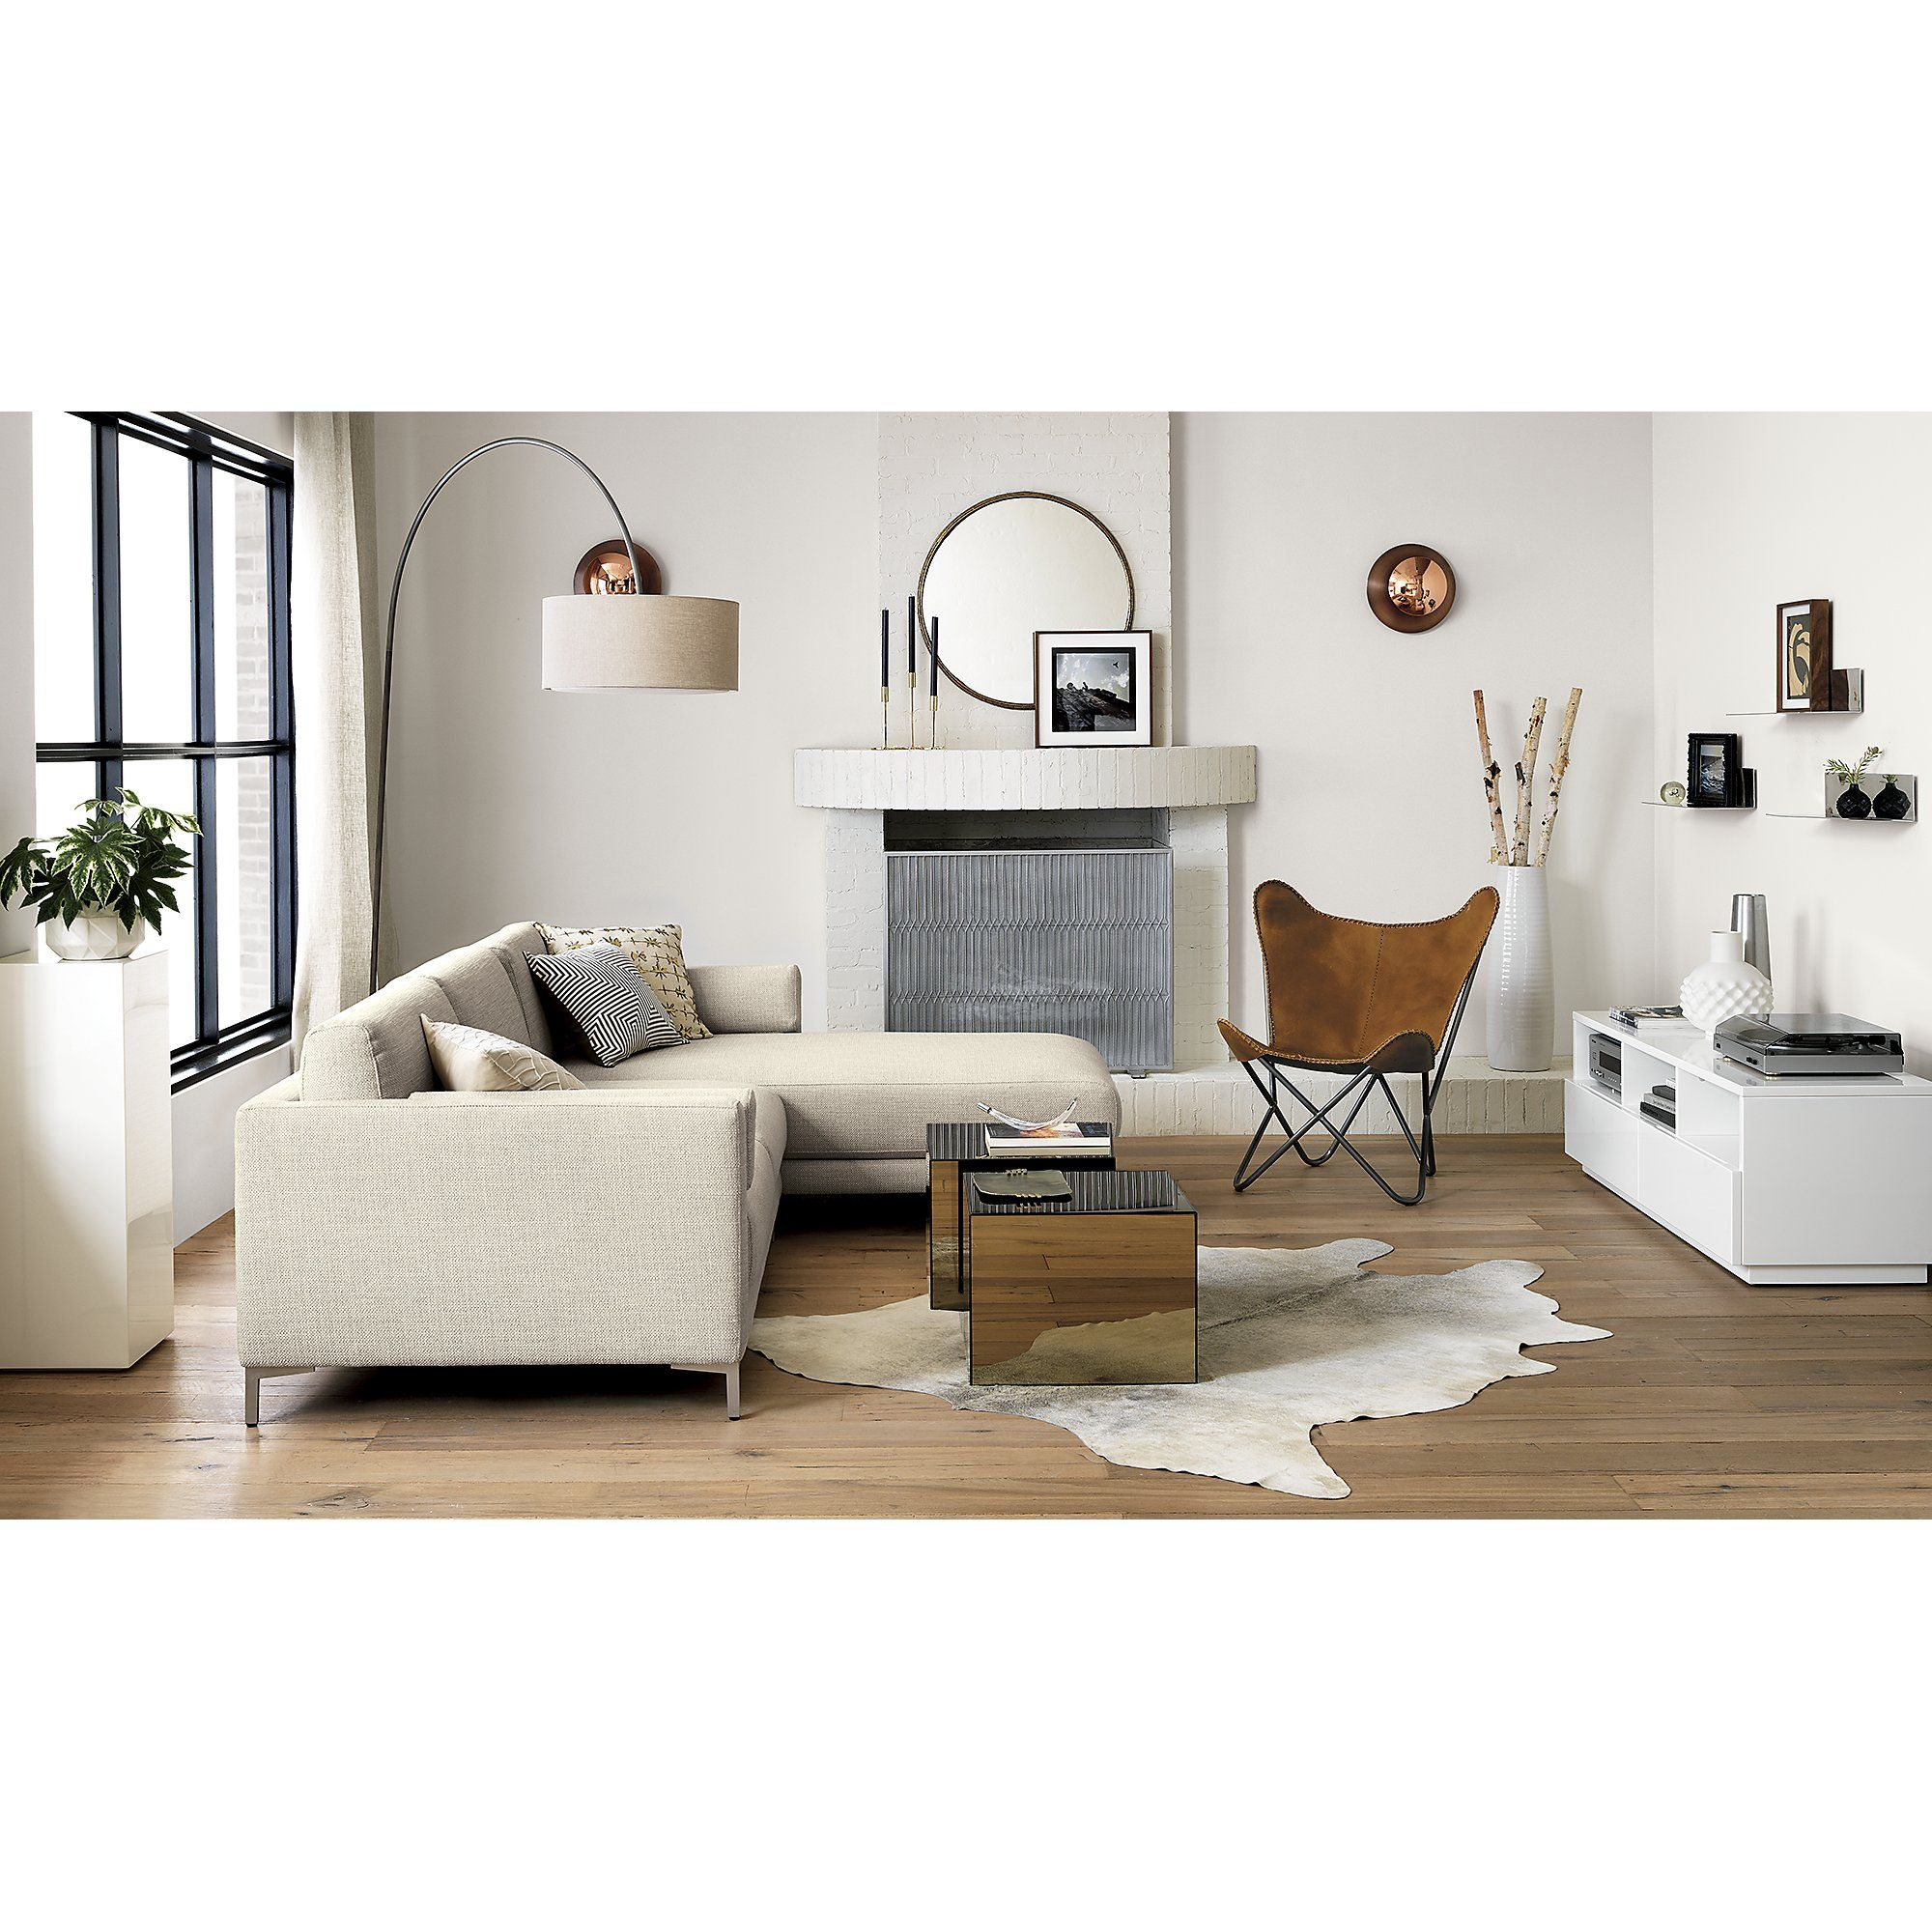 Panes Fireplace Screen Cb2 Leather Butterfly Chair Minimalist Living Room Small Living Room Design